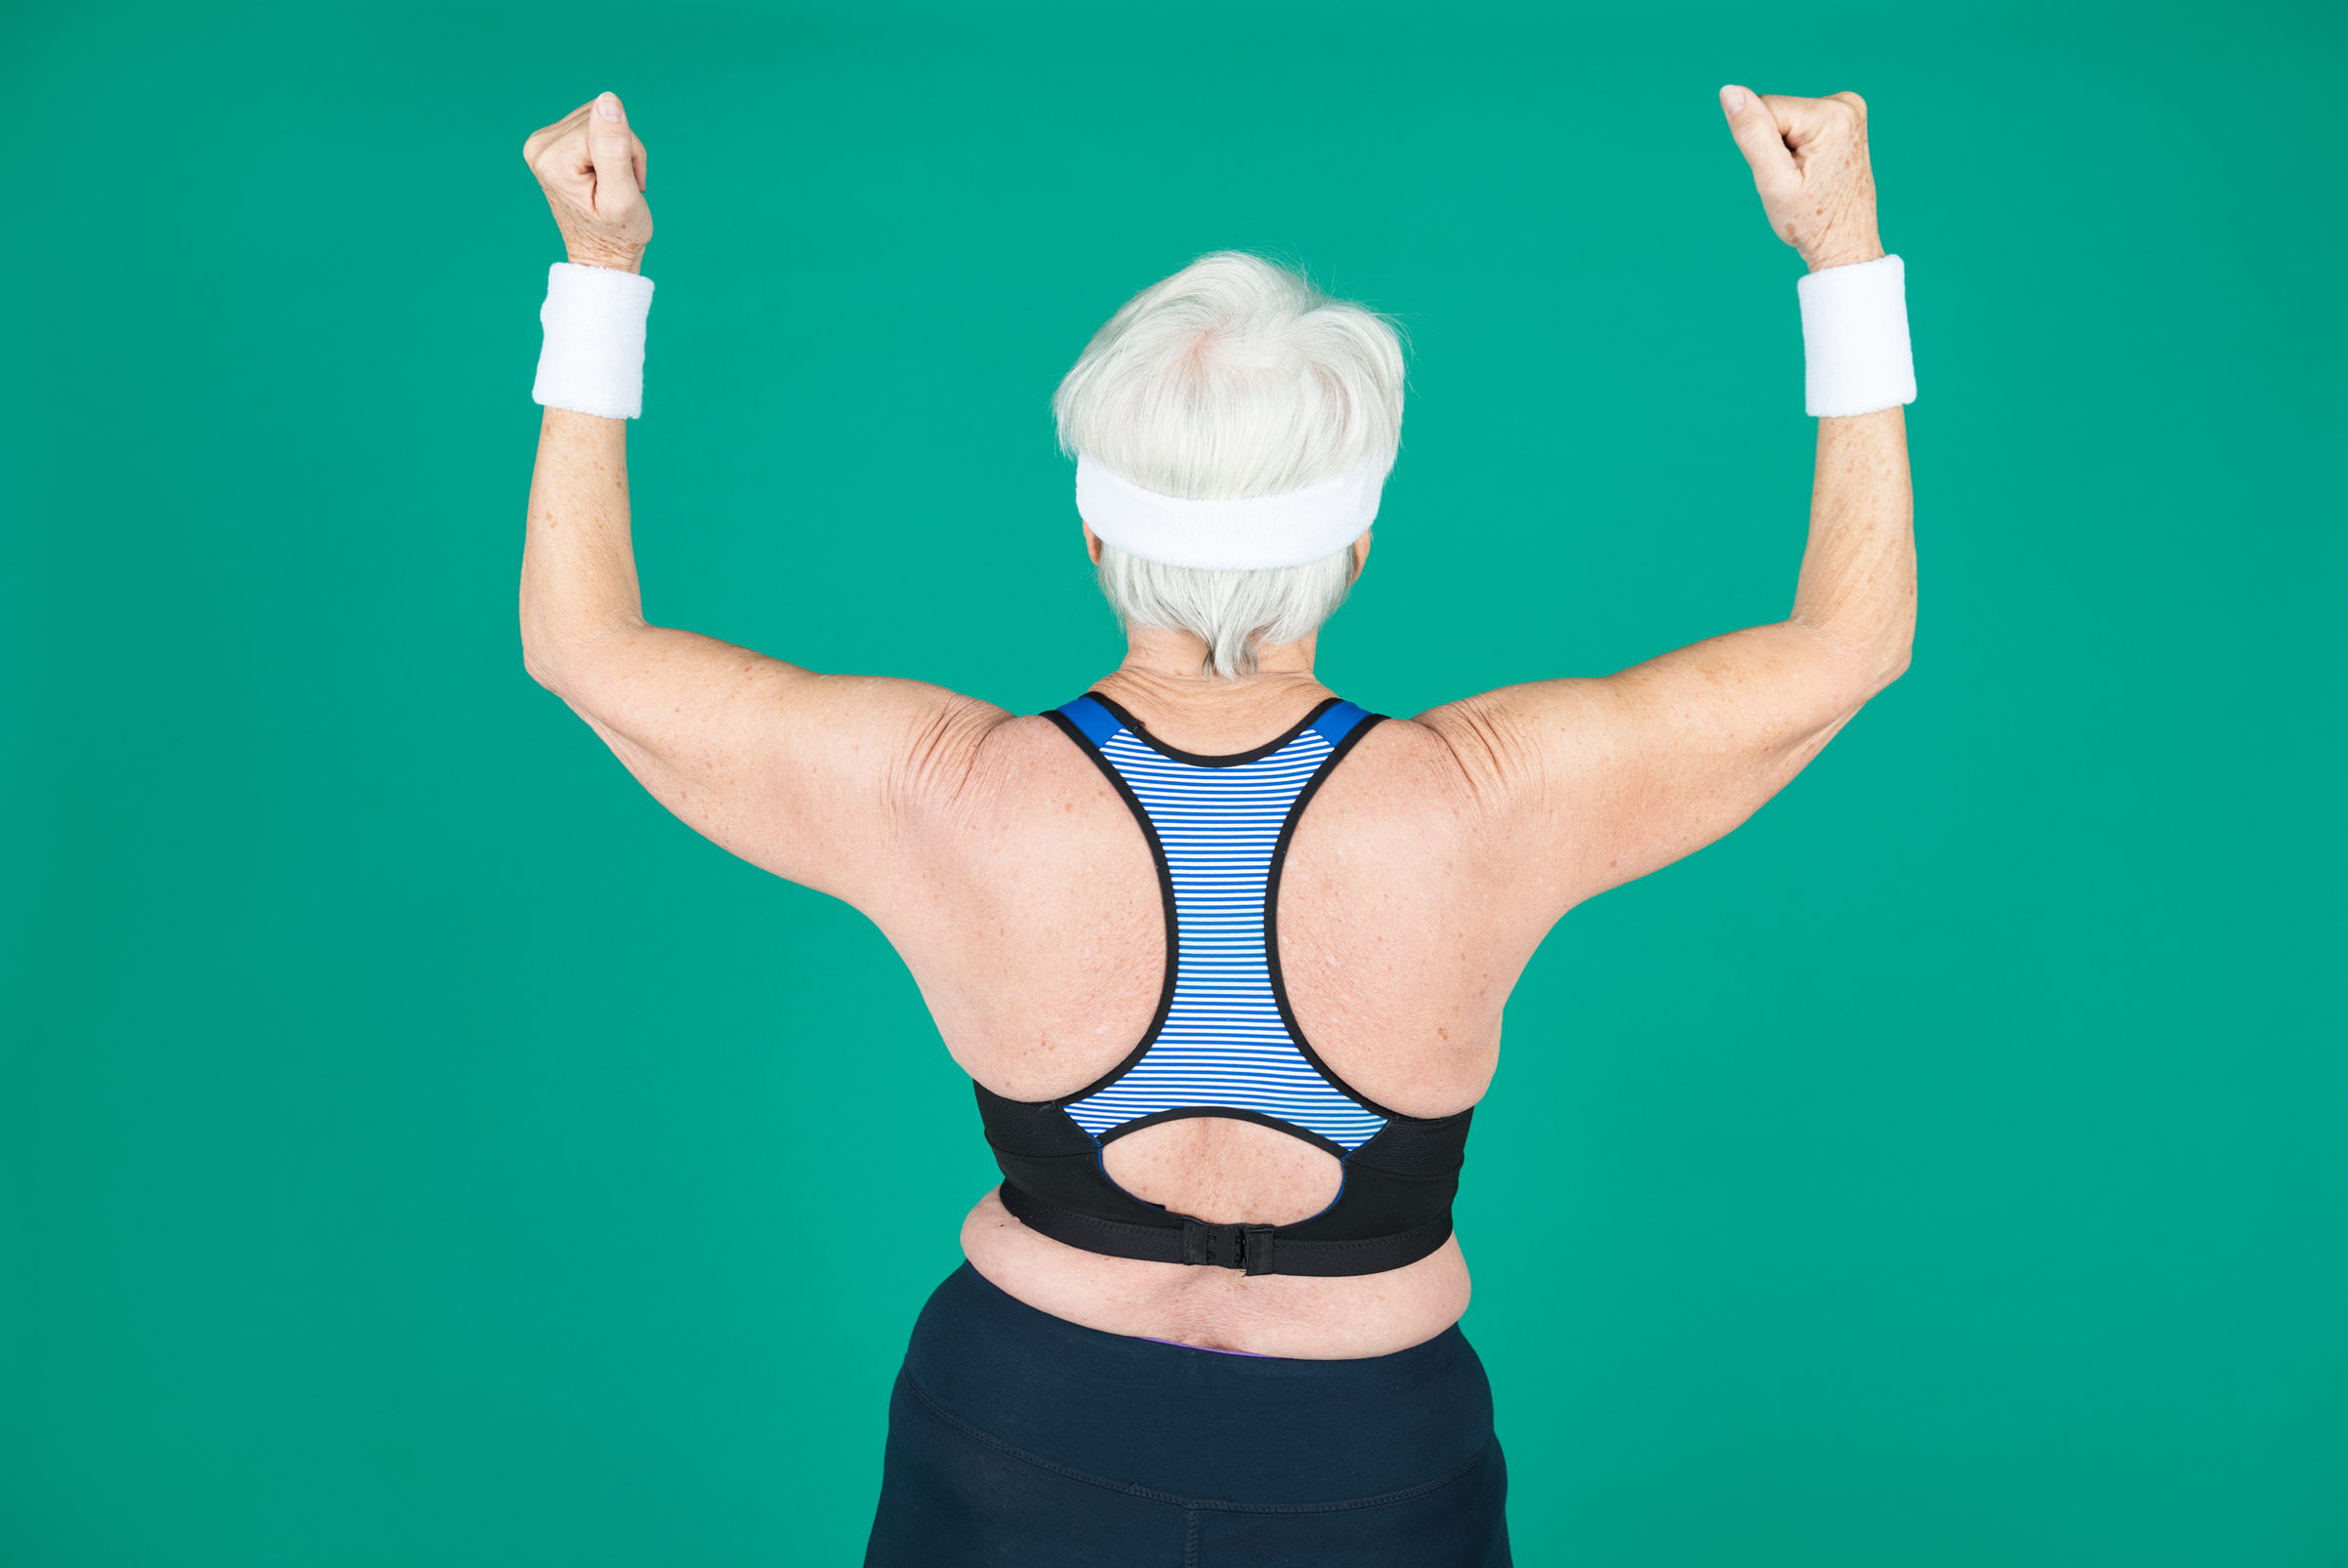 Better Late Than Never: Exercising Helps You Live Longer No Matter When You Start